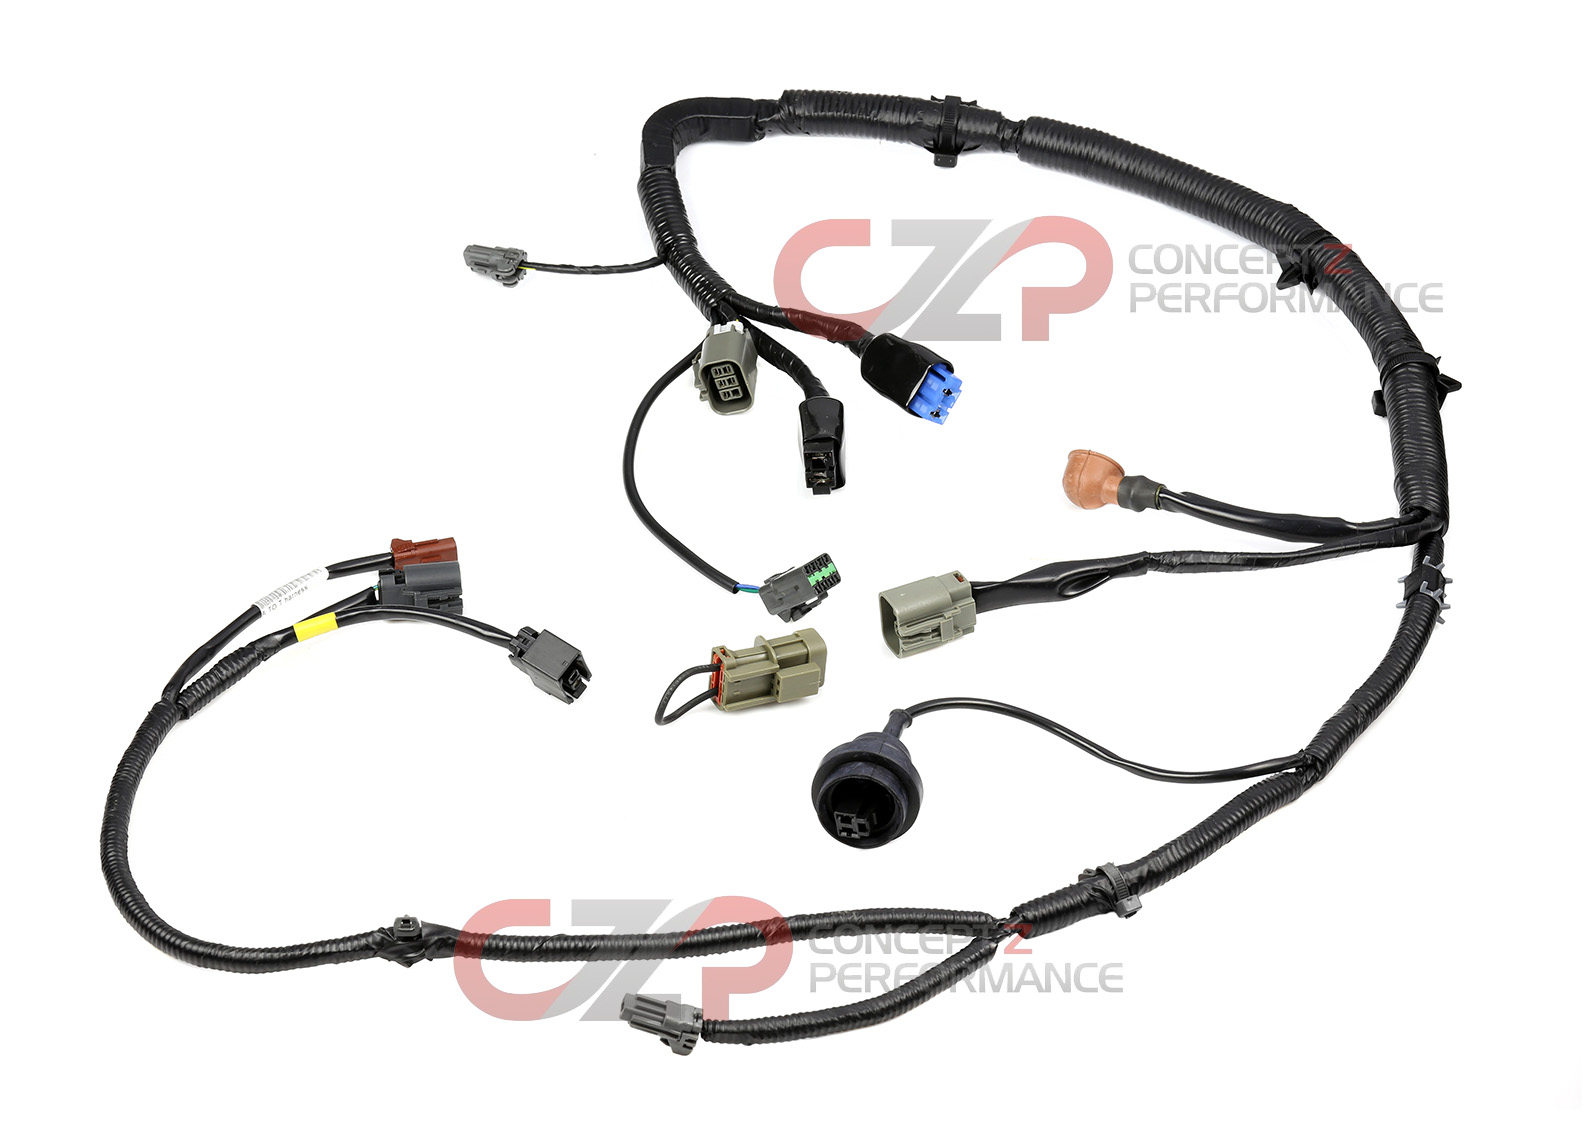 main z32 engine electrical wiring harnesses concept z performance